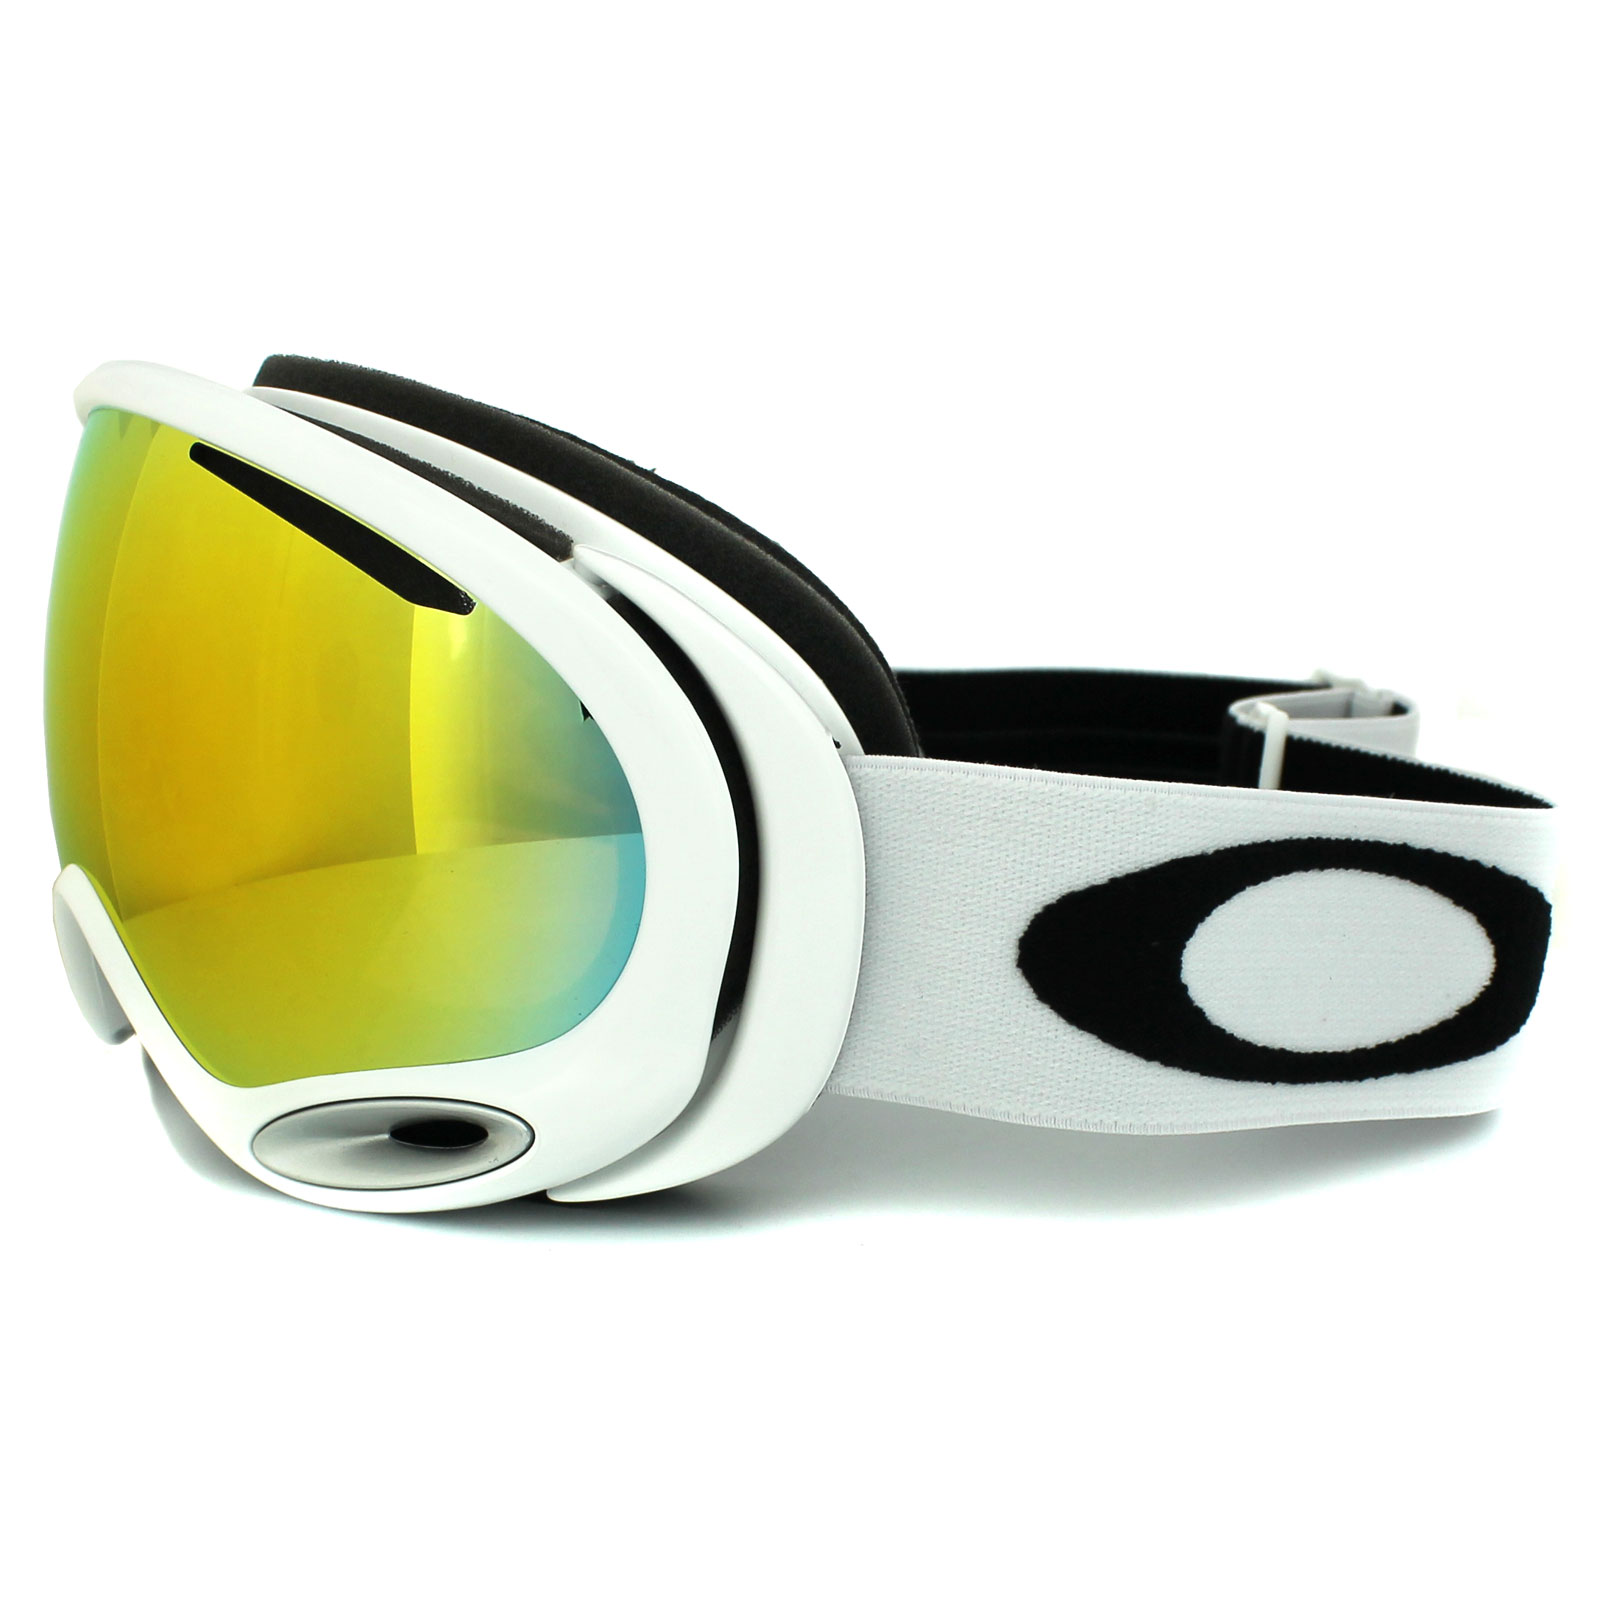 Oakley Ski Goggles A Frame 2.0 59-568 Polished White Fire Iridium | eBay